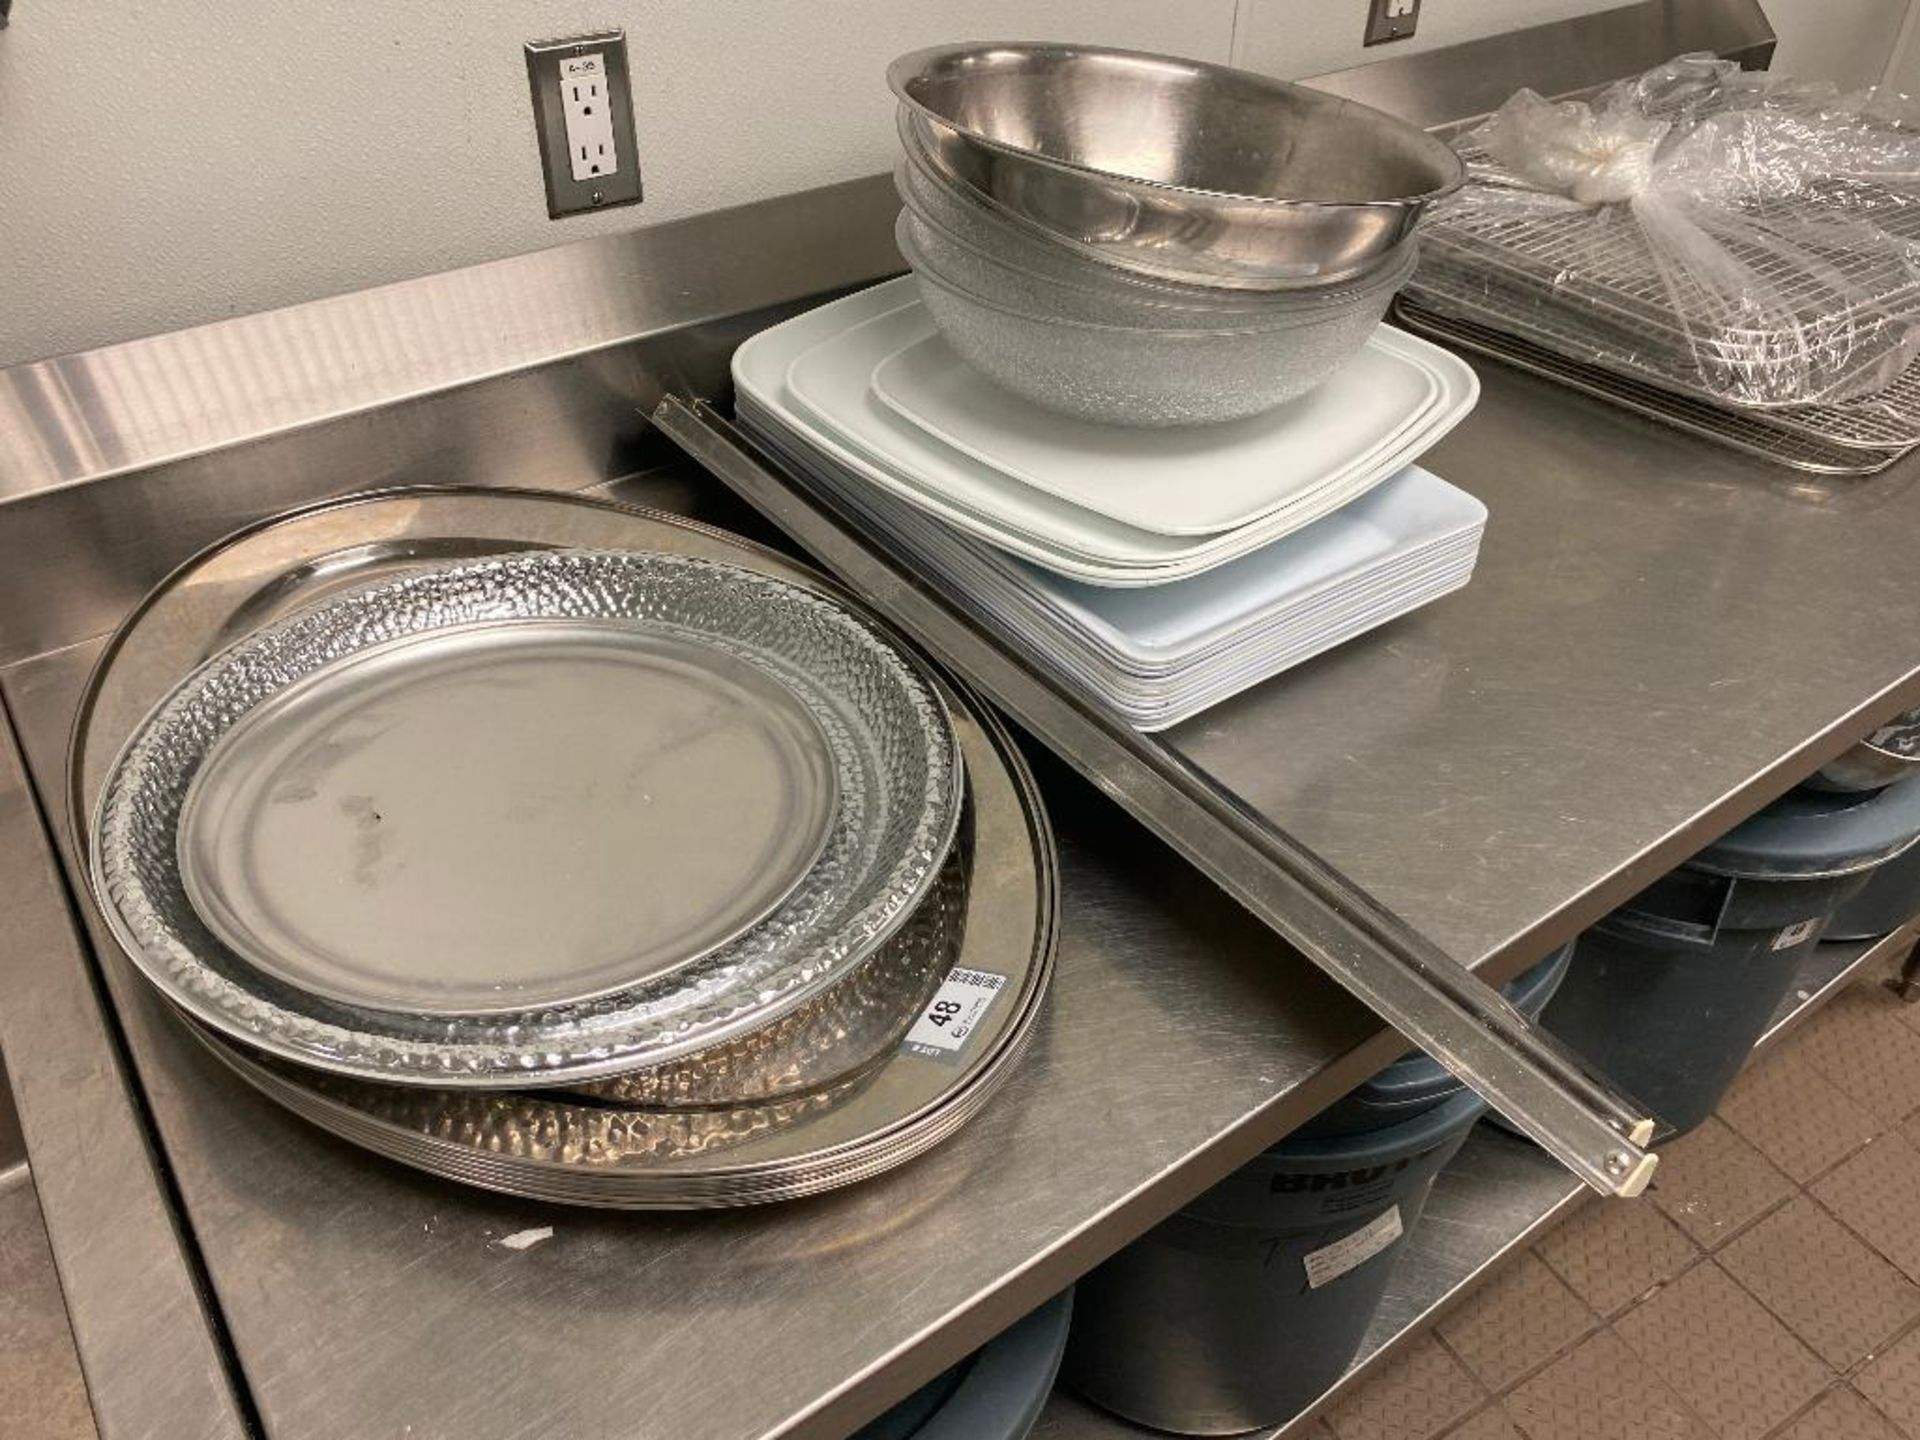 LOT OF ASSORTED STAINLESS STEEL & PLASTIC SERVING PLATTERS, PLASTIC AND STAINLESS MIXING BOWLS & 2 O - Image 3 of 3